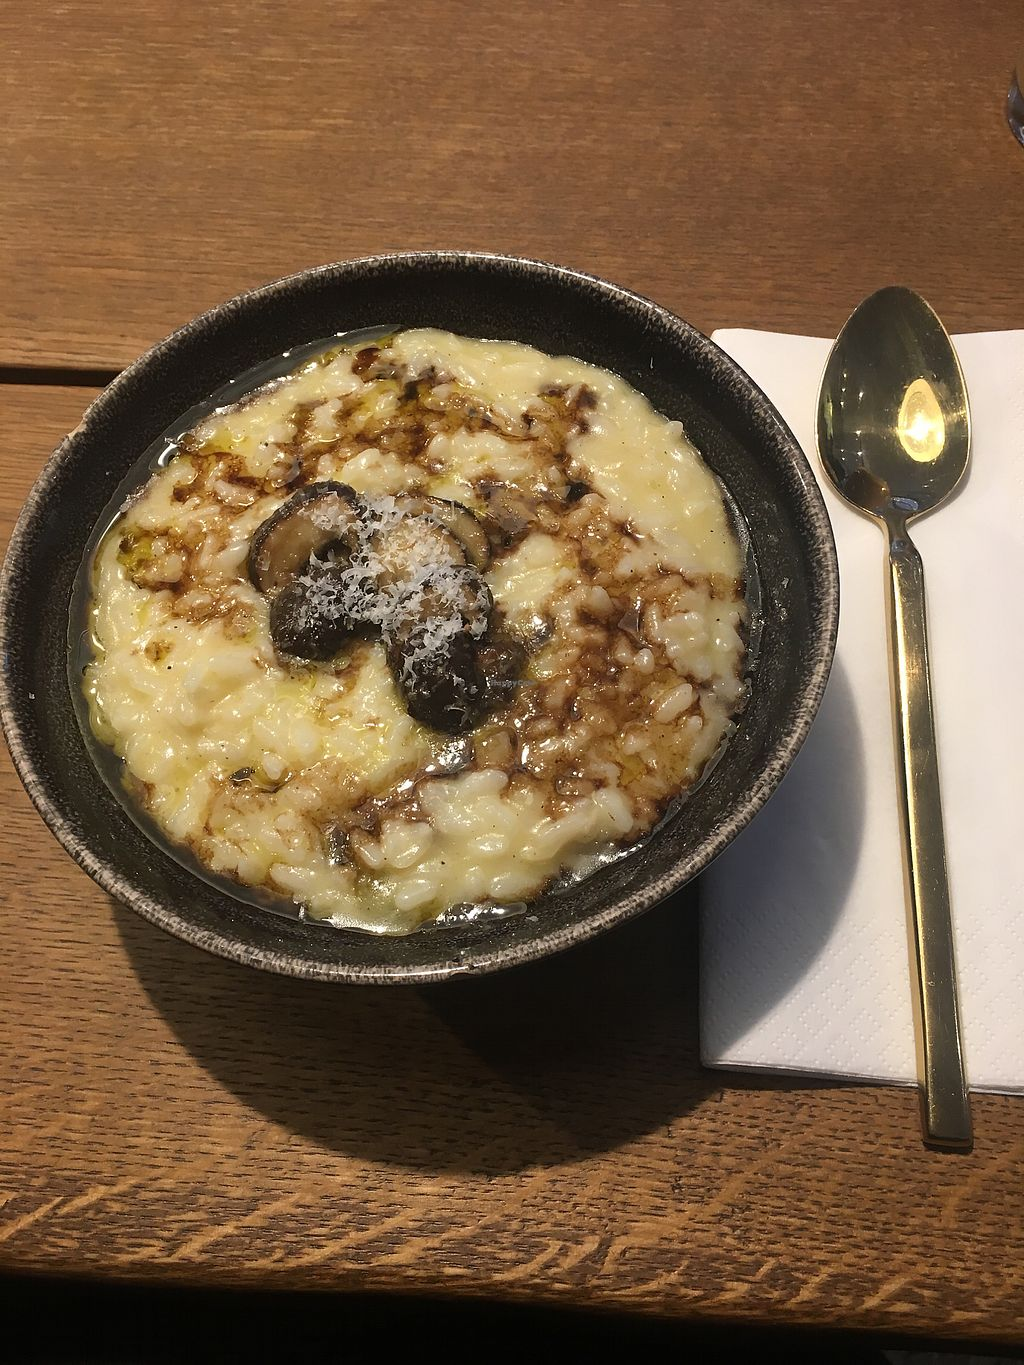 """Photo of Bowl Market  by <a href=""""/members/profile/Sorana"""">Sorana</a> <br/>Risotto with pickles <br/> January 28, 2018  - <a href='/contact/abuse/image/108954/351944'>Report</a>"""